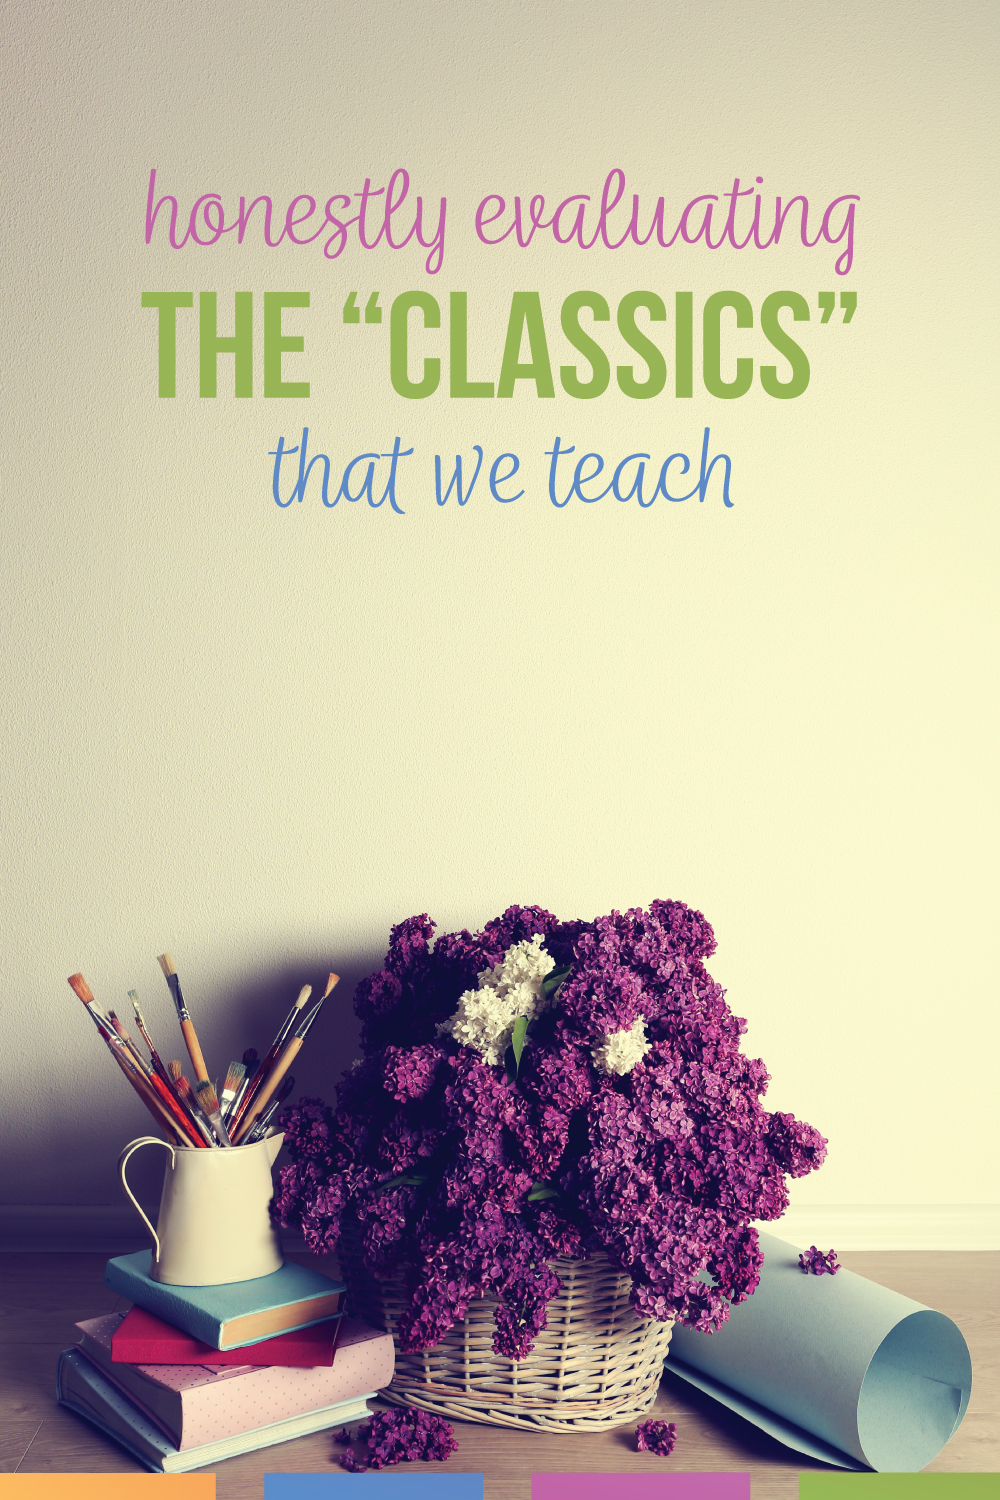 Should high school English teachers still teach To Kill A Mockingbird? What classics should we teach in high school? What messages do these classics send to developing brains?